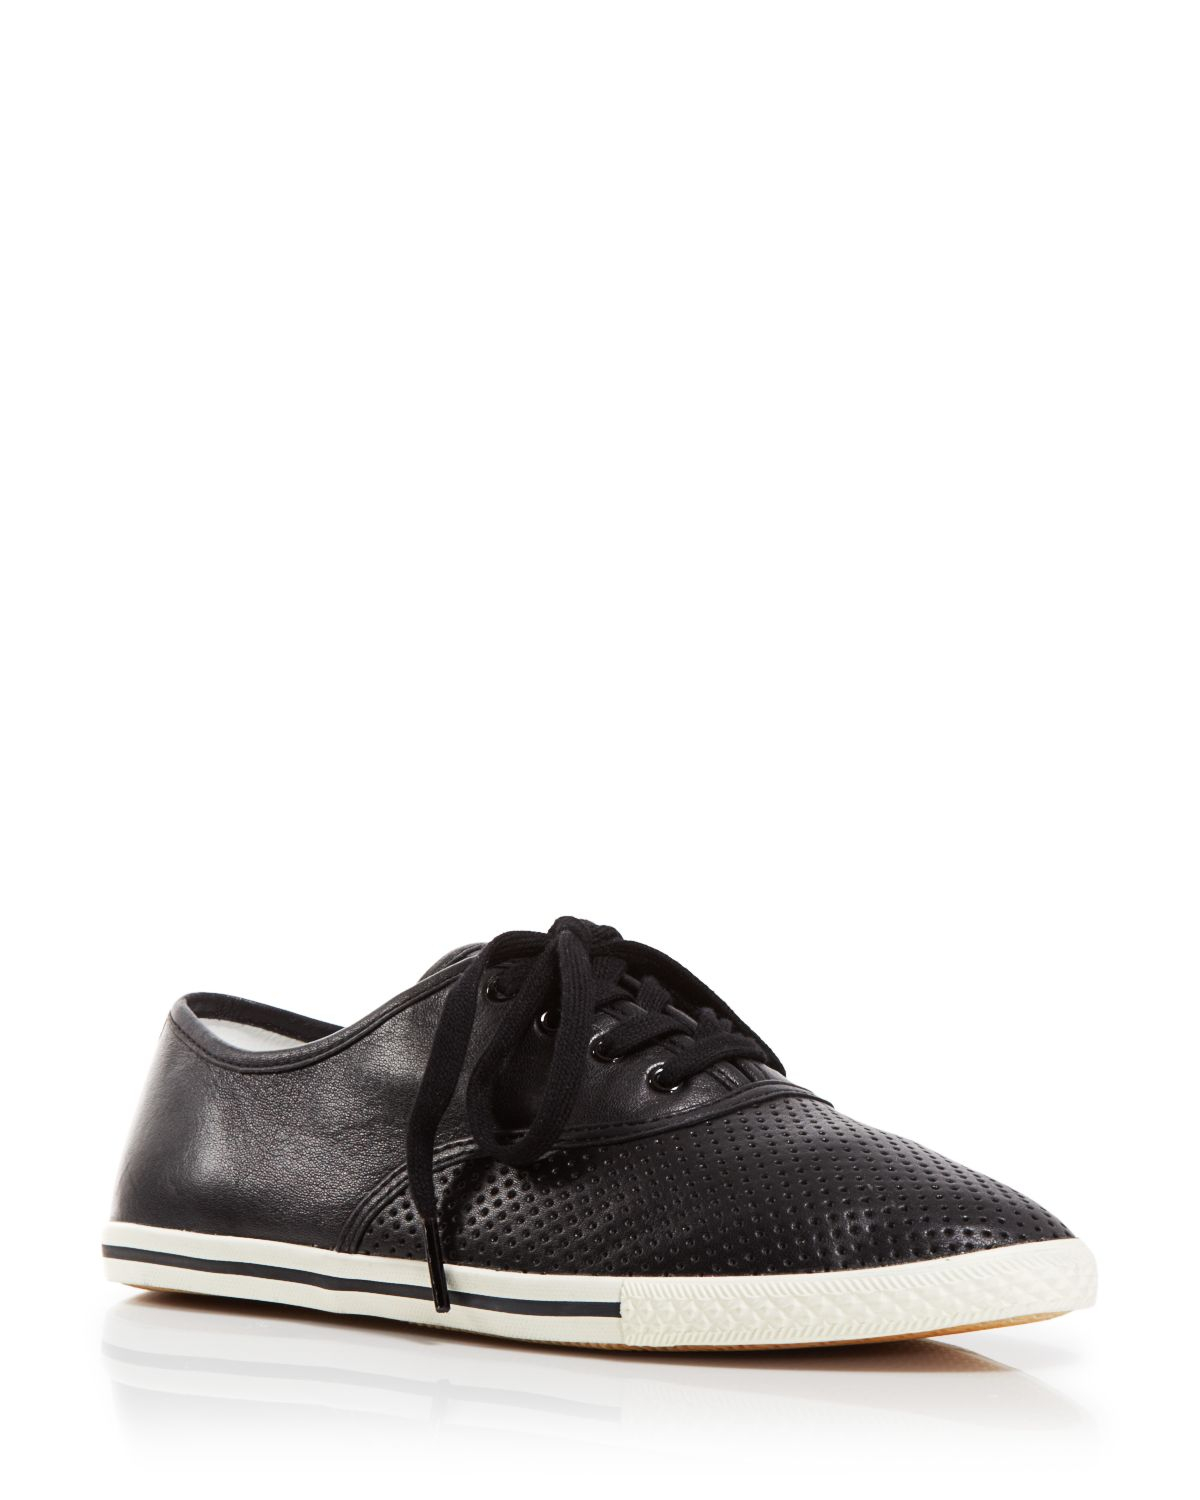 Marc By Marc Jacobs Woman Carter Perforated Leather Sneakers Black Size 40 Marc Jacobs bFzy45